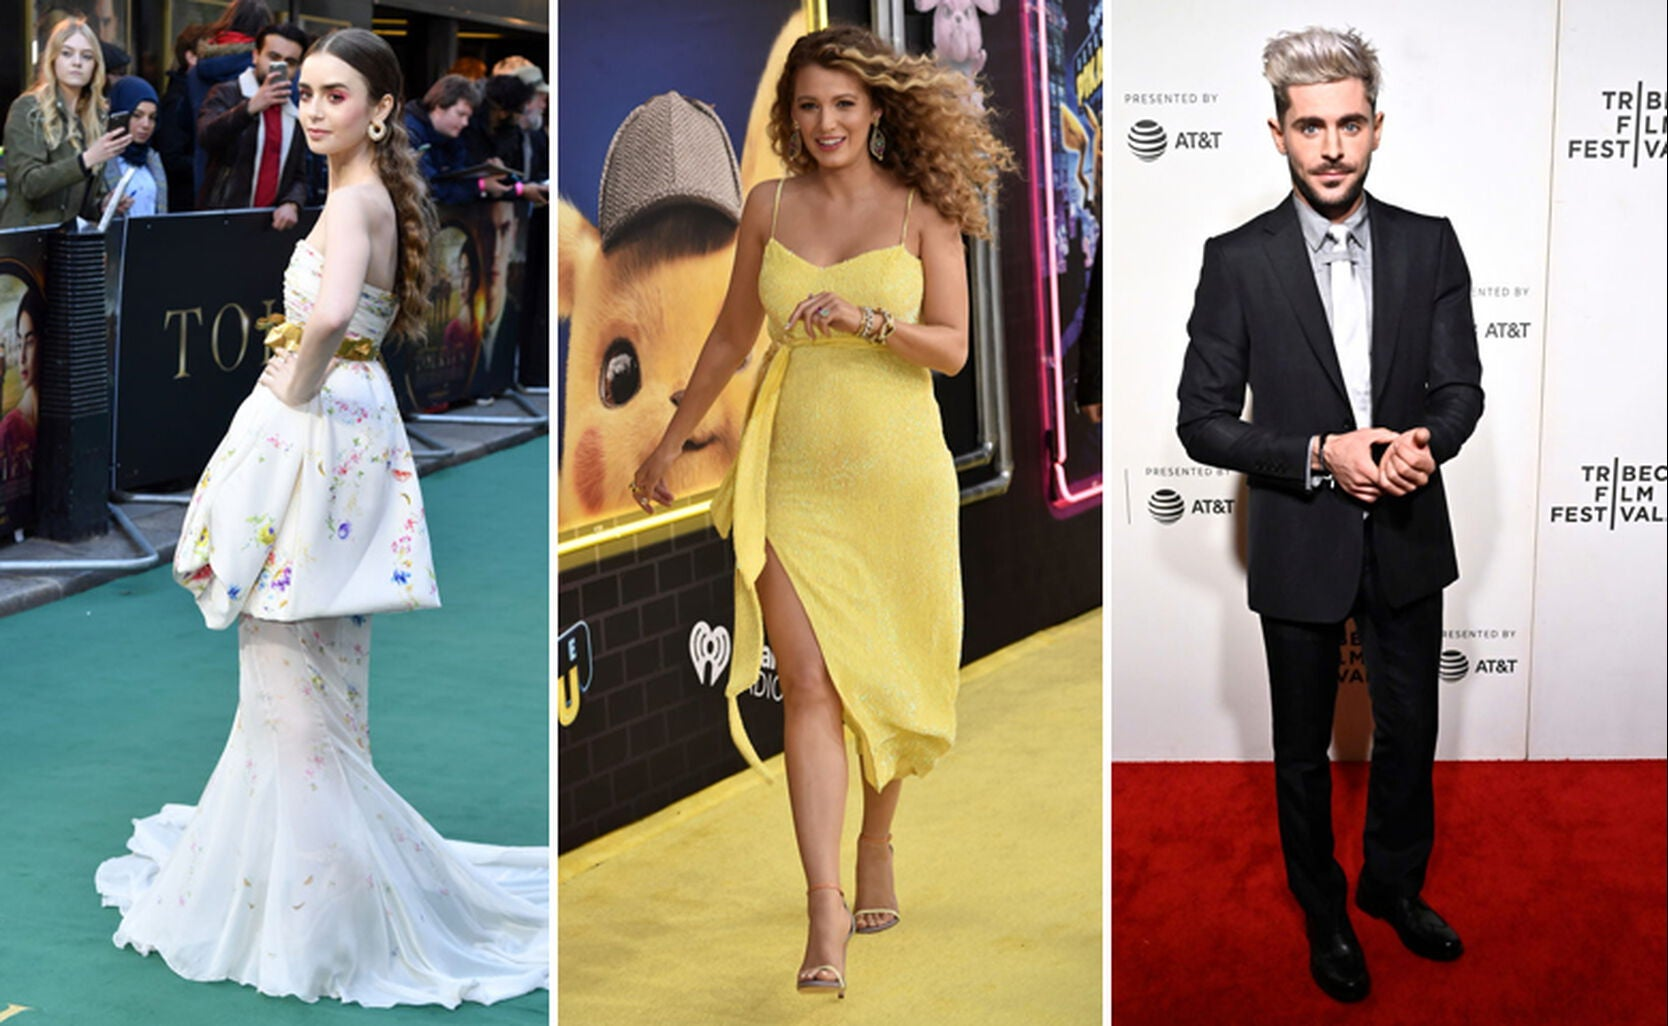 Lily Collins, Blake Lively, Zac Efron